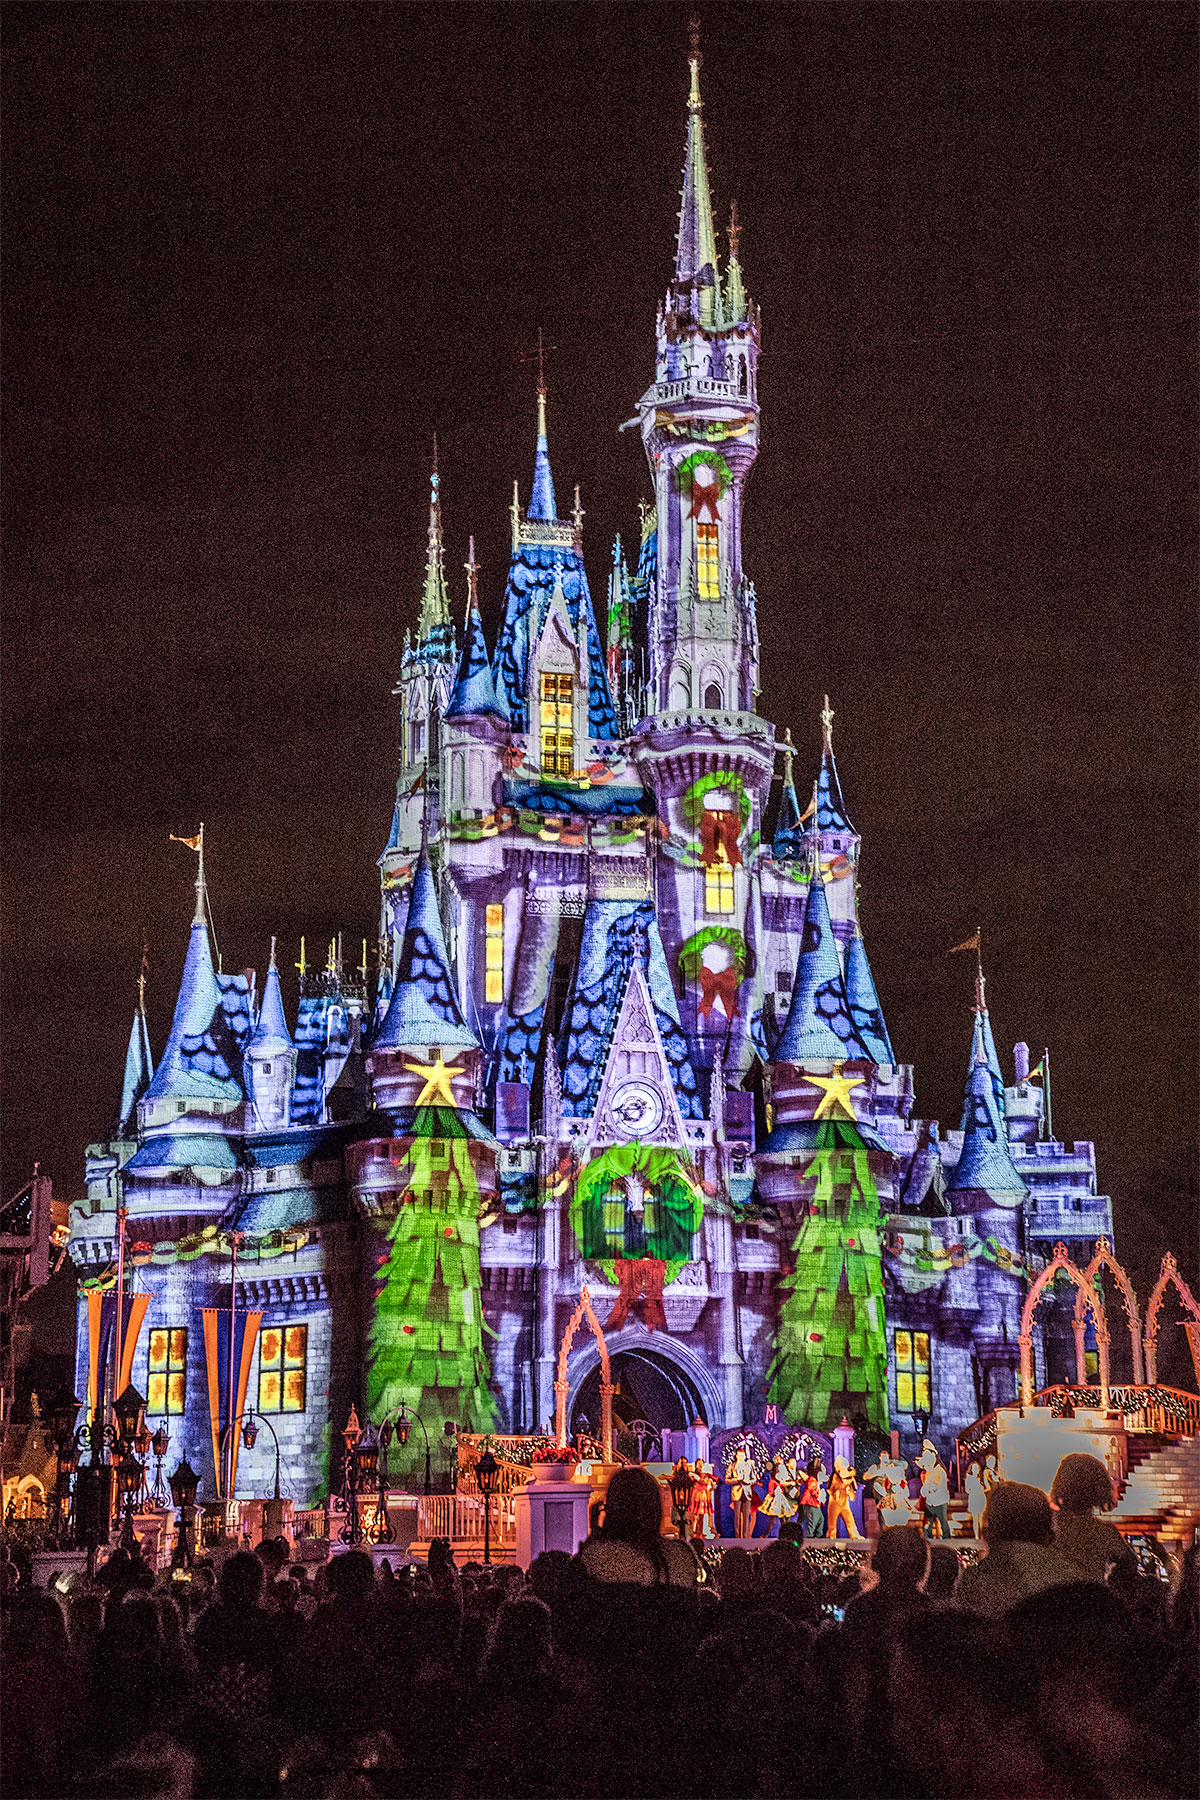 Cinderella-Castle-At-Christmas-After-Dark